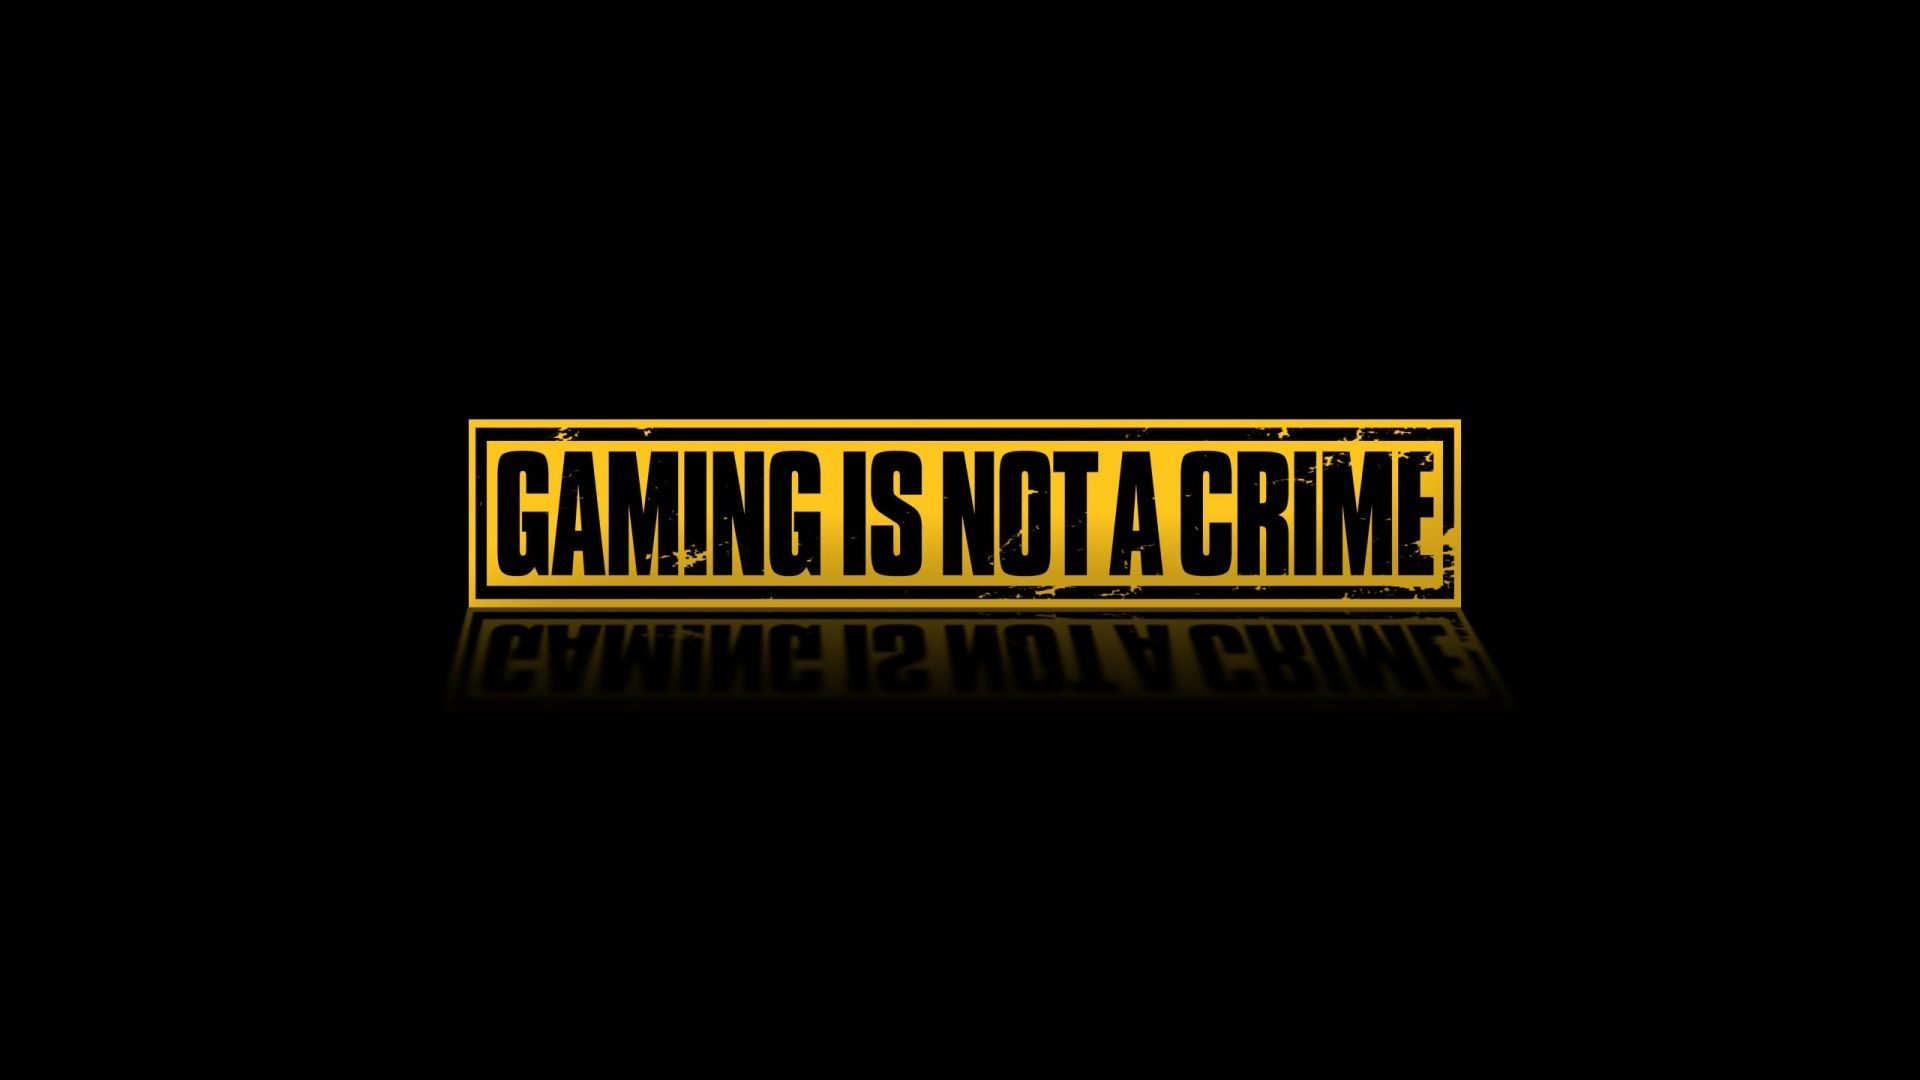 Black Background Crime Gaming Text Crime, Gaming, Text) Via Www.